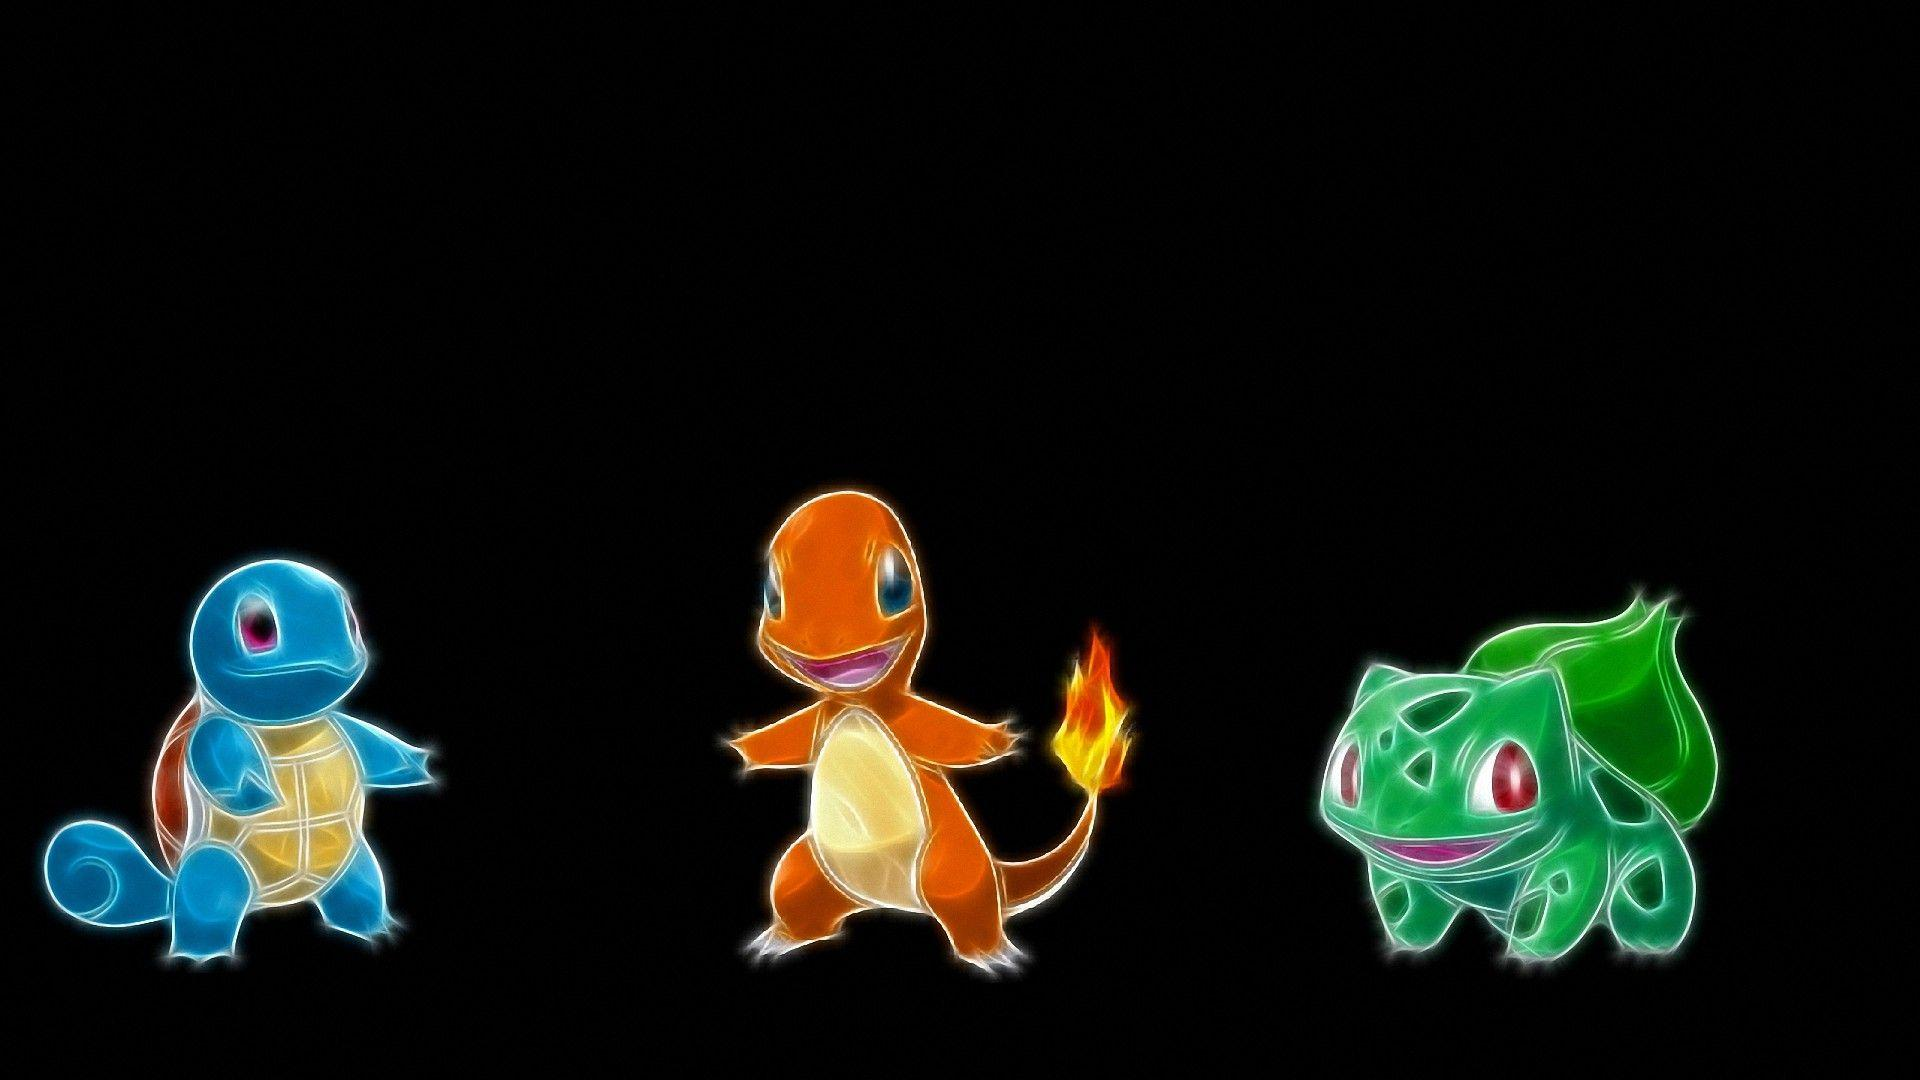 Cartoon Bulbasaur Squirtle Charmander HD Wallpapers